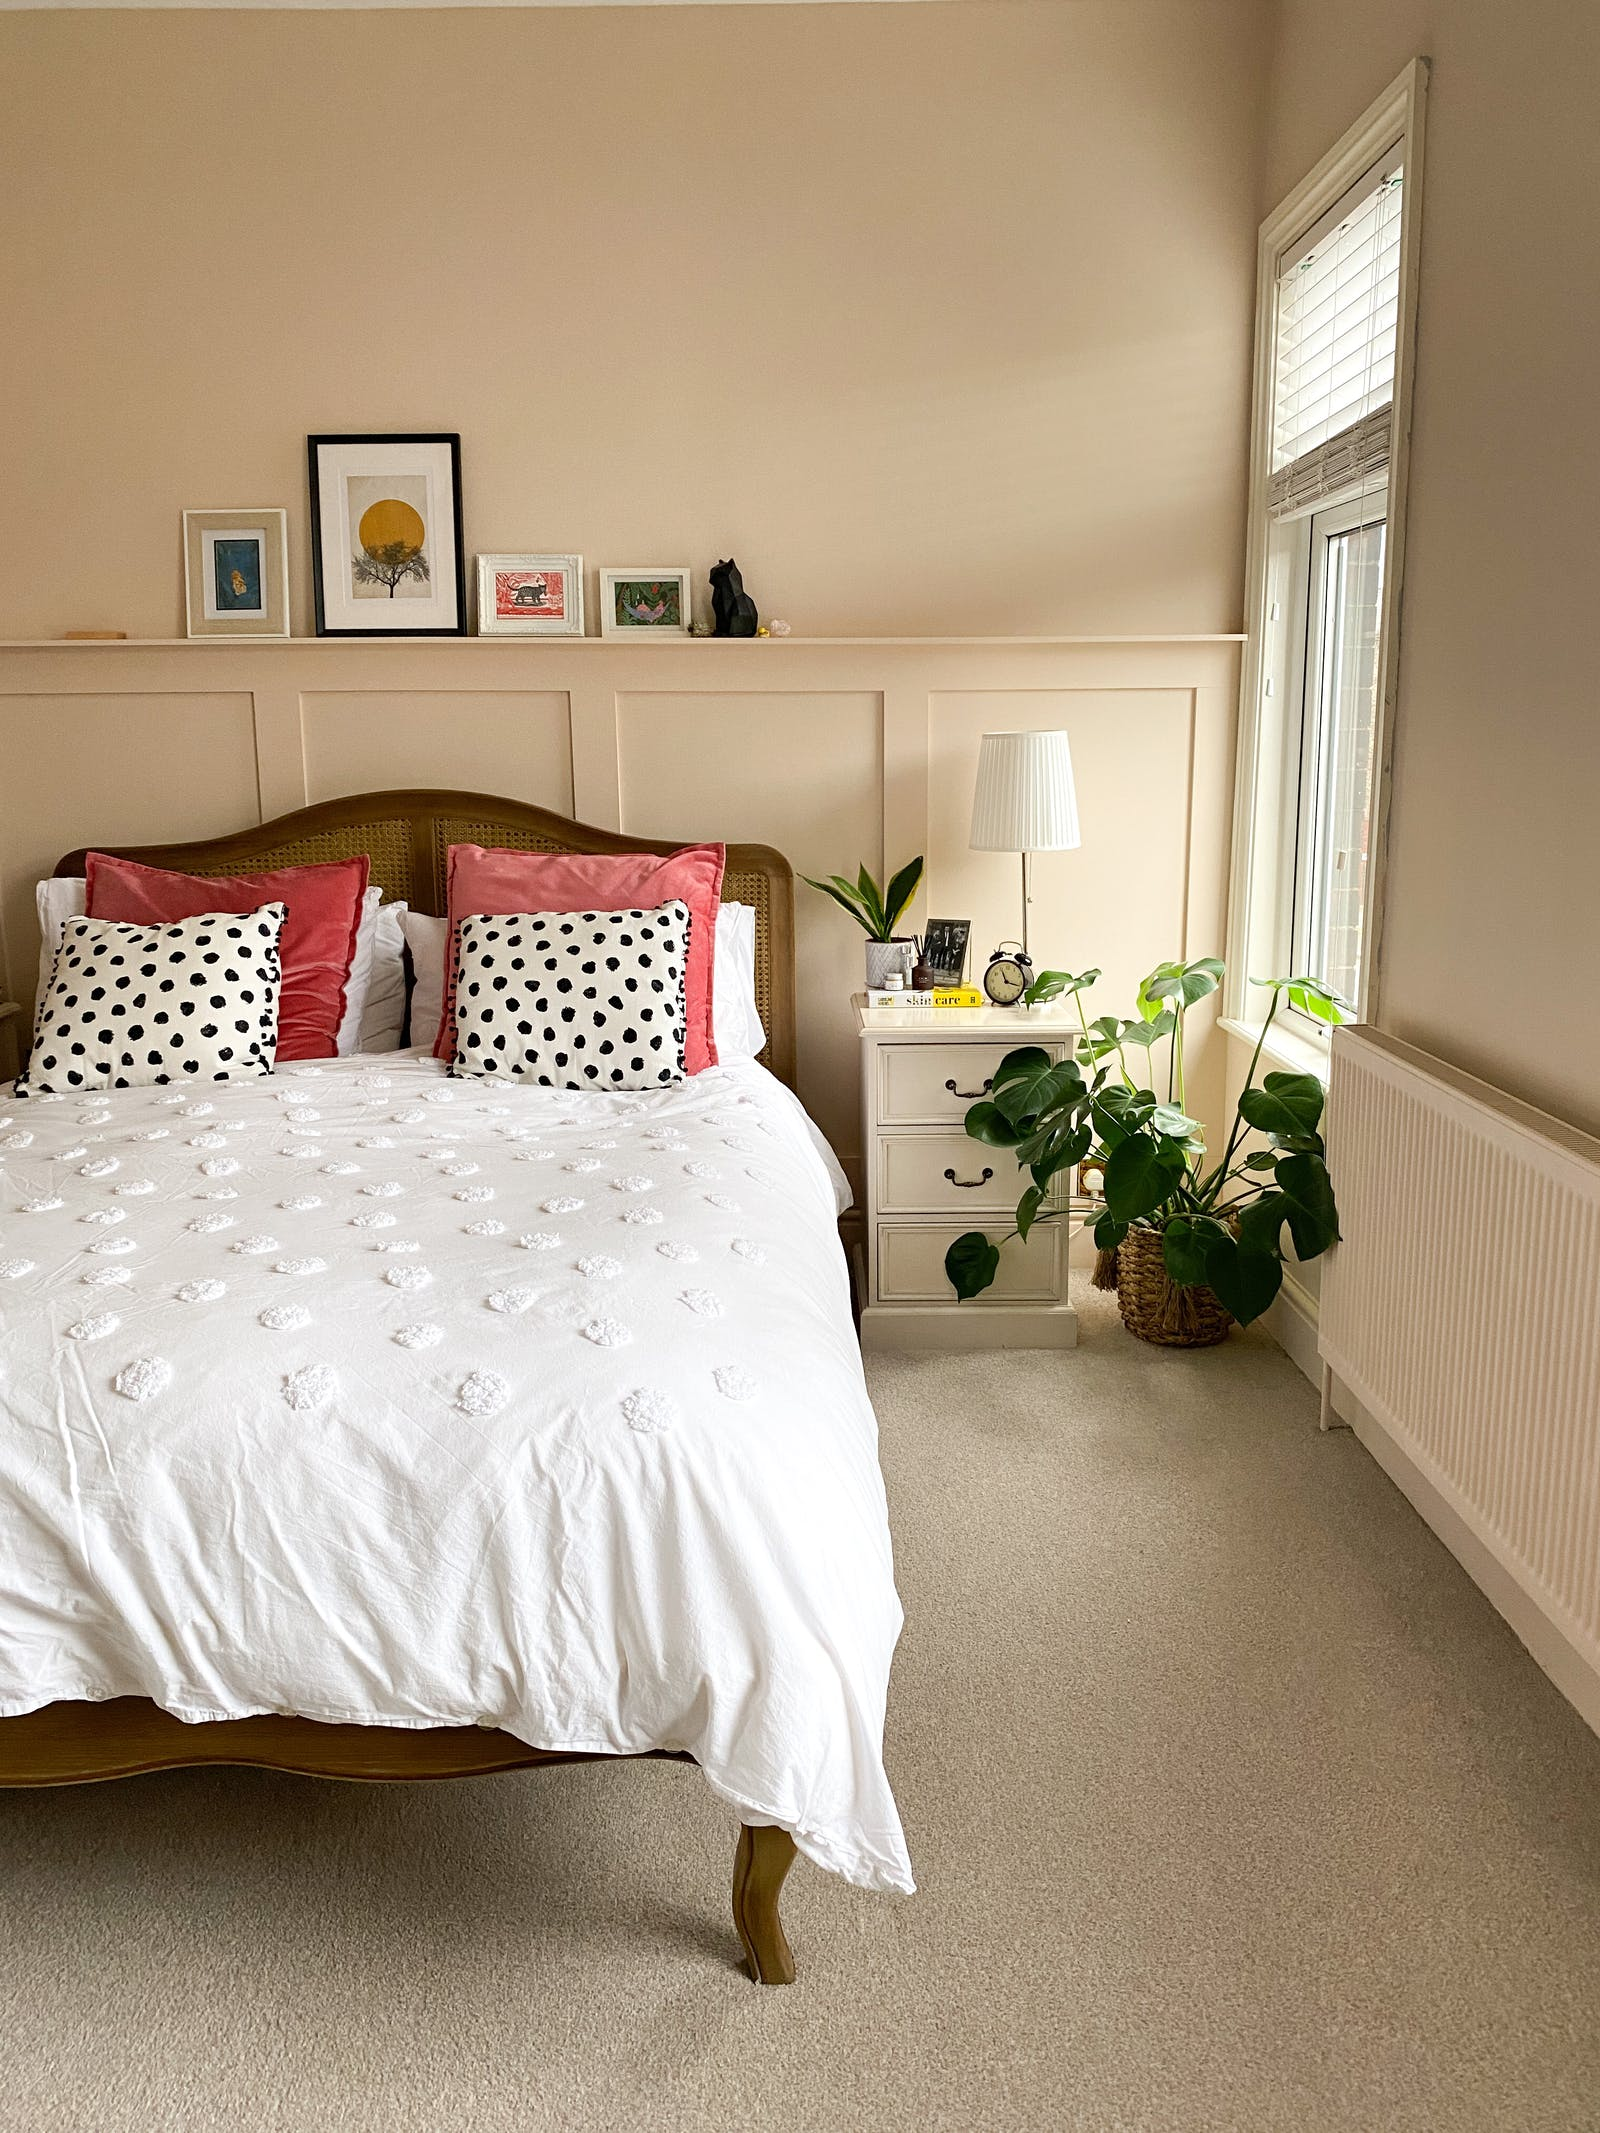 Bedroom painted in Lick Pink 02, with polkadot pillows and house plants